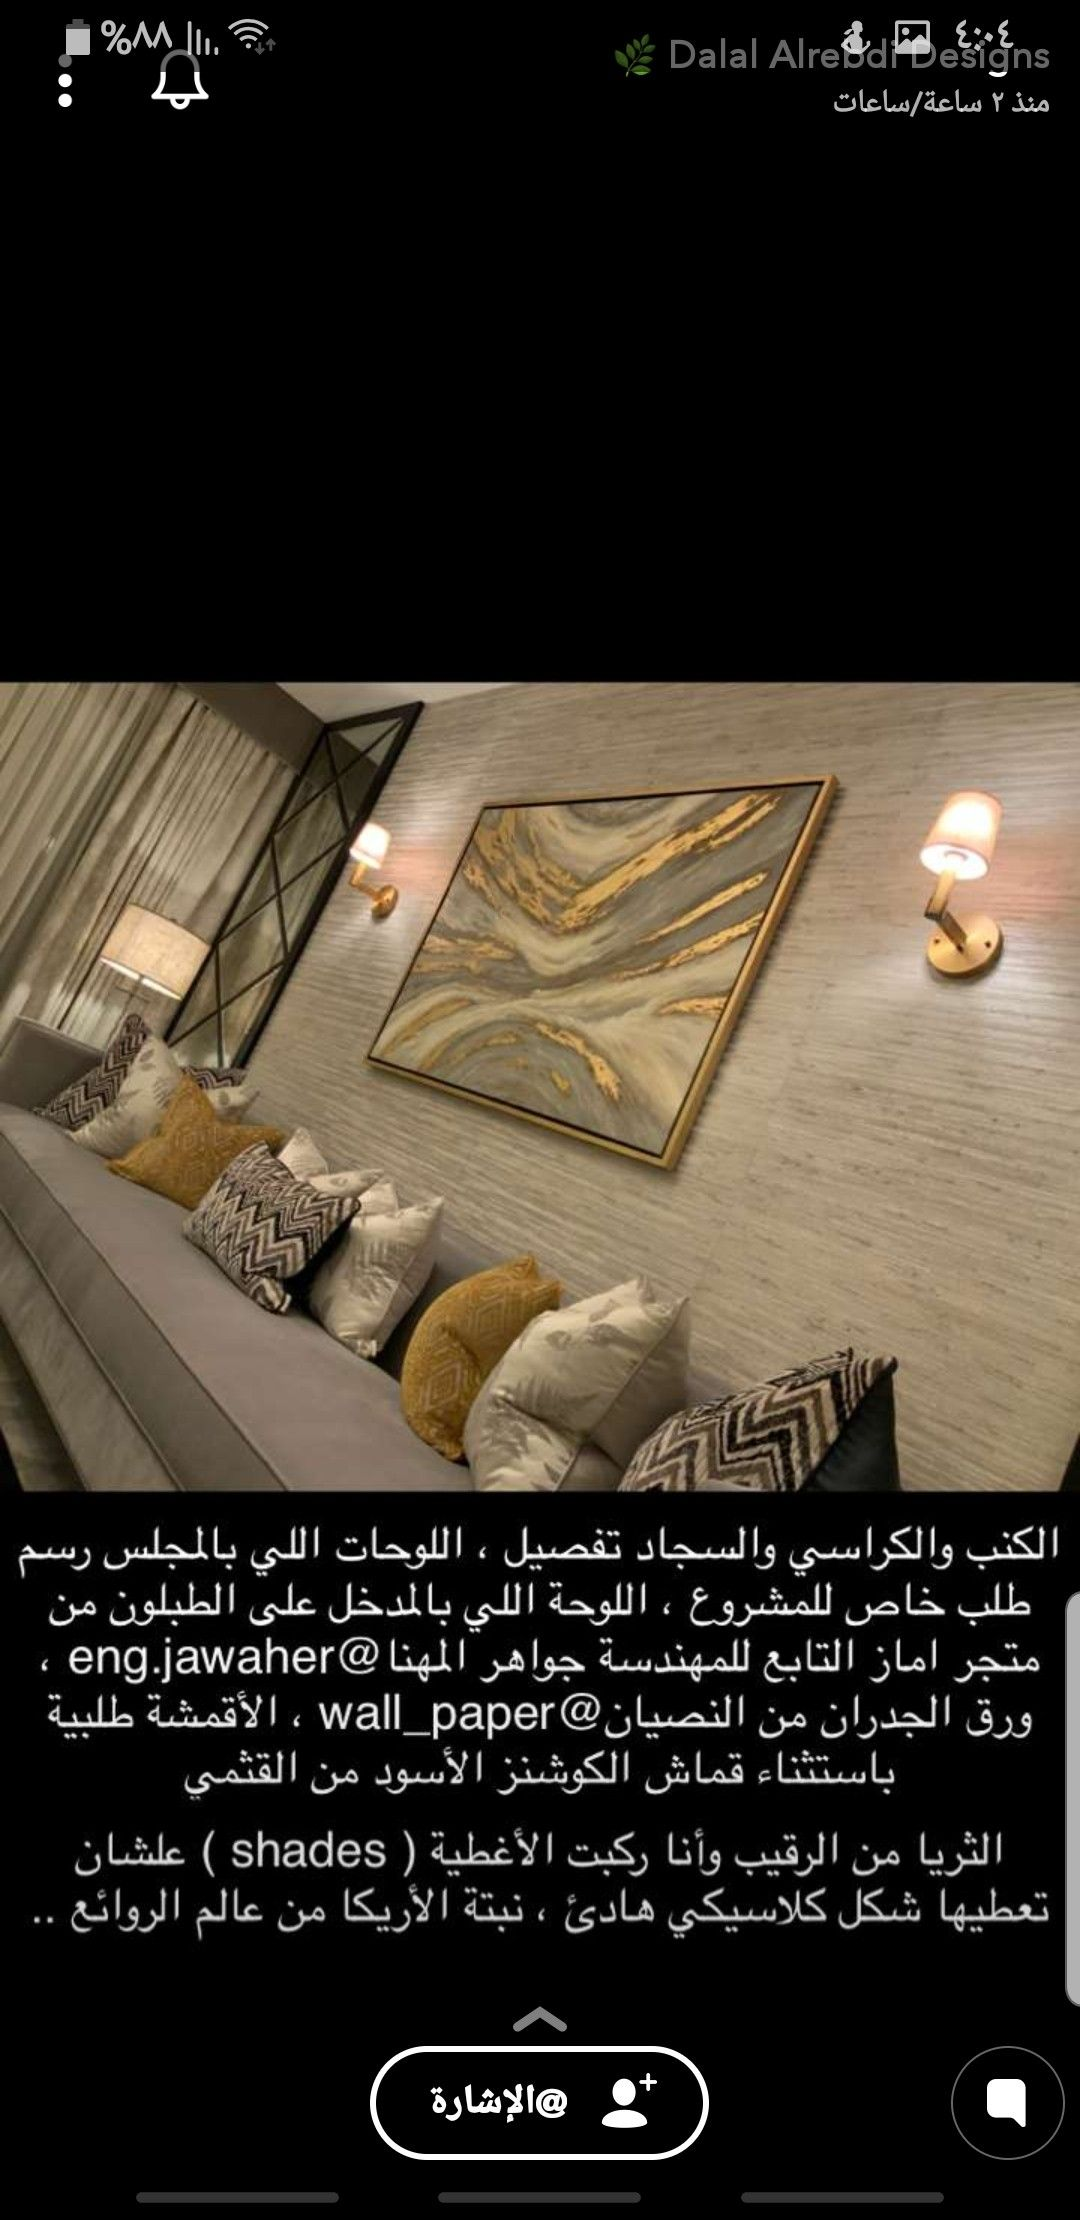 Pin By Hnoreen On Home Managment إدارة المنزل In 2020 Family House Plans Family House House Plans